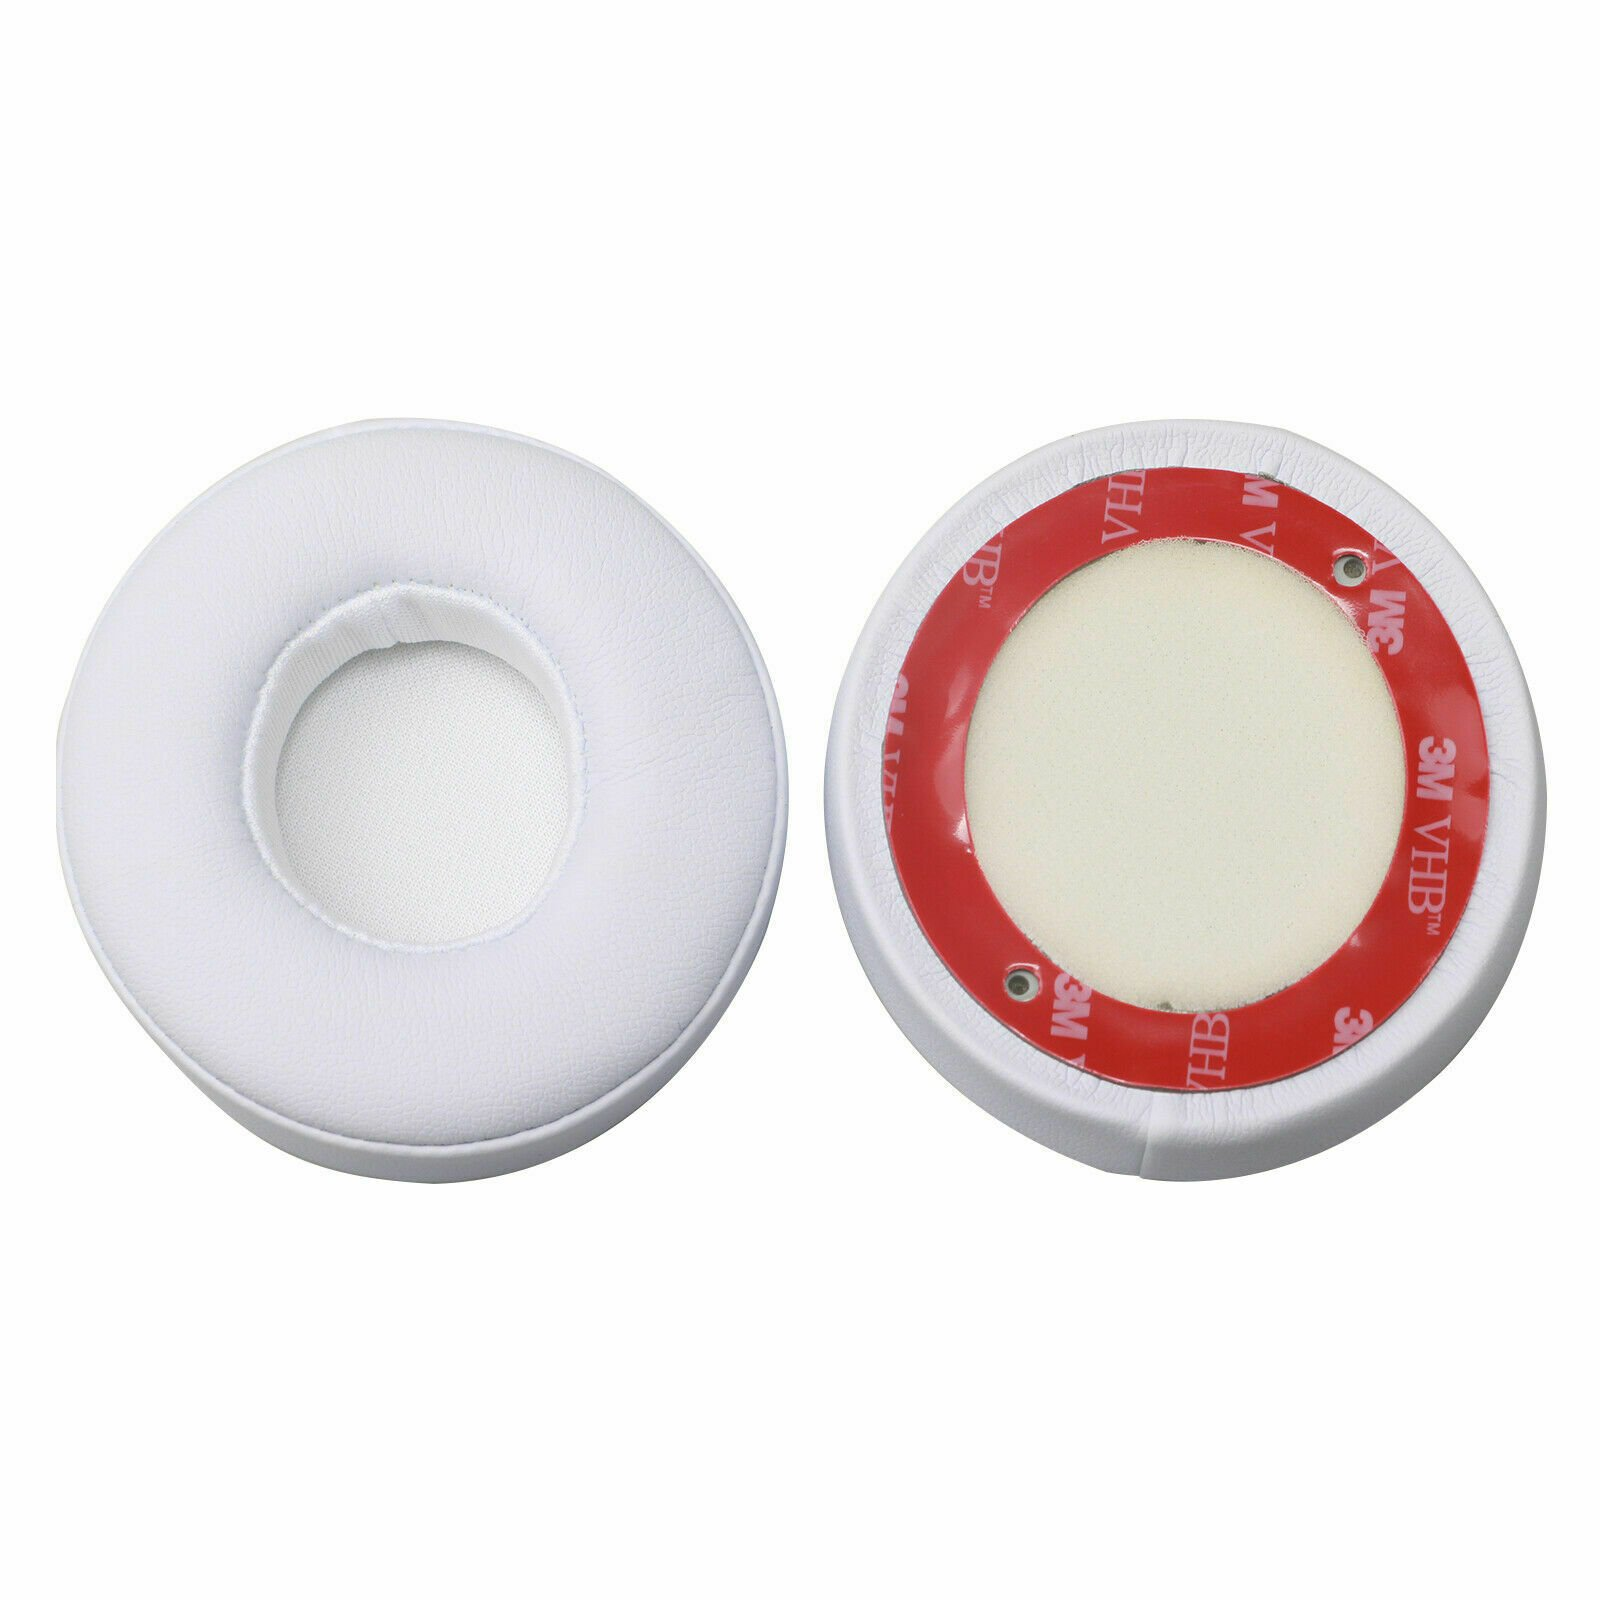 thumbnail 11 - Ear Pad Cushion Replacement For Beats Dre Solo 2 Solo 3 Wireless / Wired